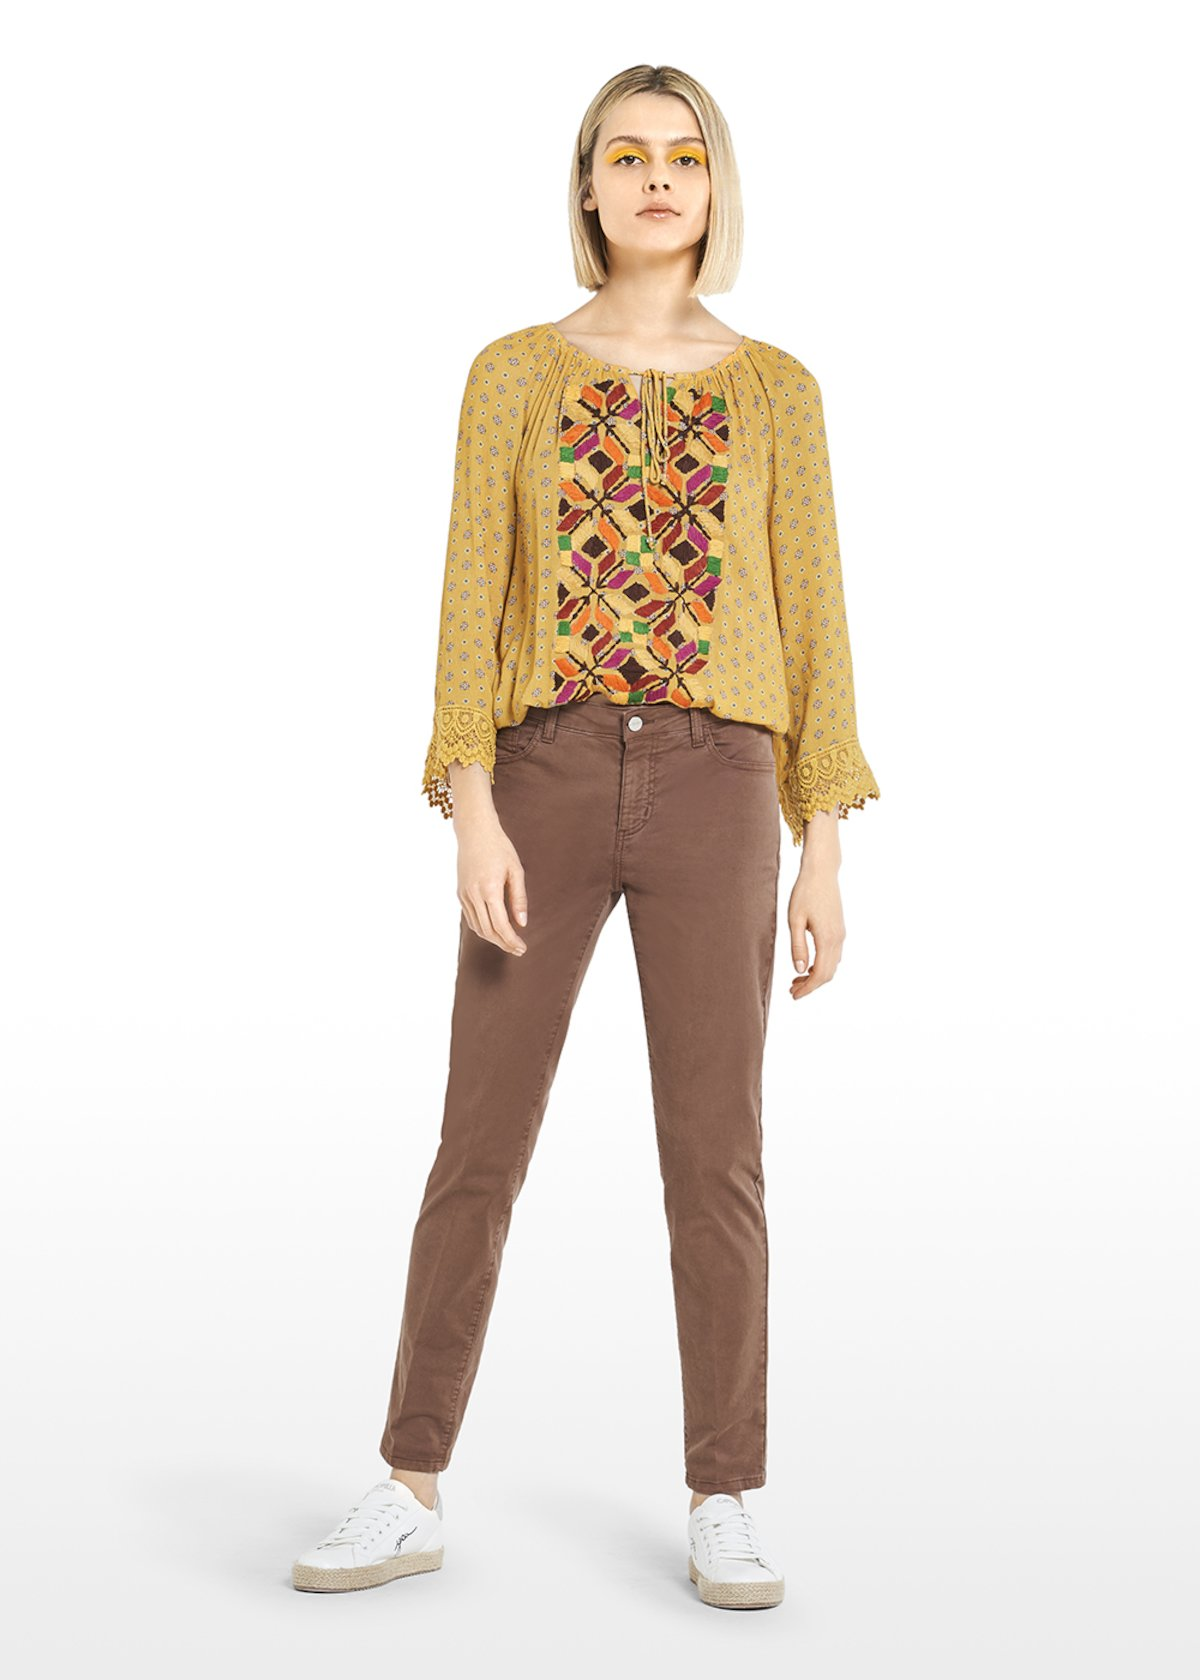 Candid crepe micro-patterned blouse with lace embroidery at cuffs - Miele / Rame Fantasia - Woman